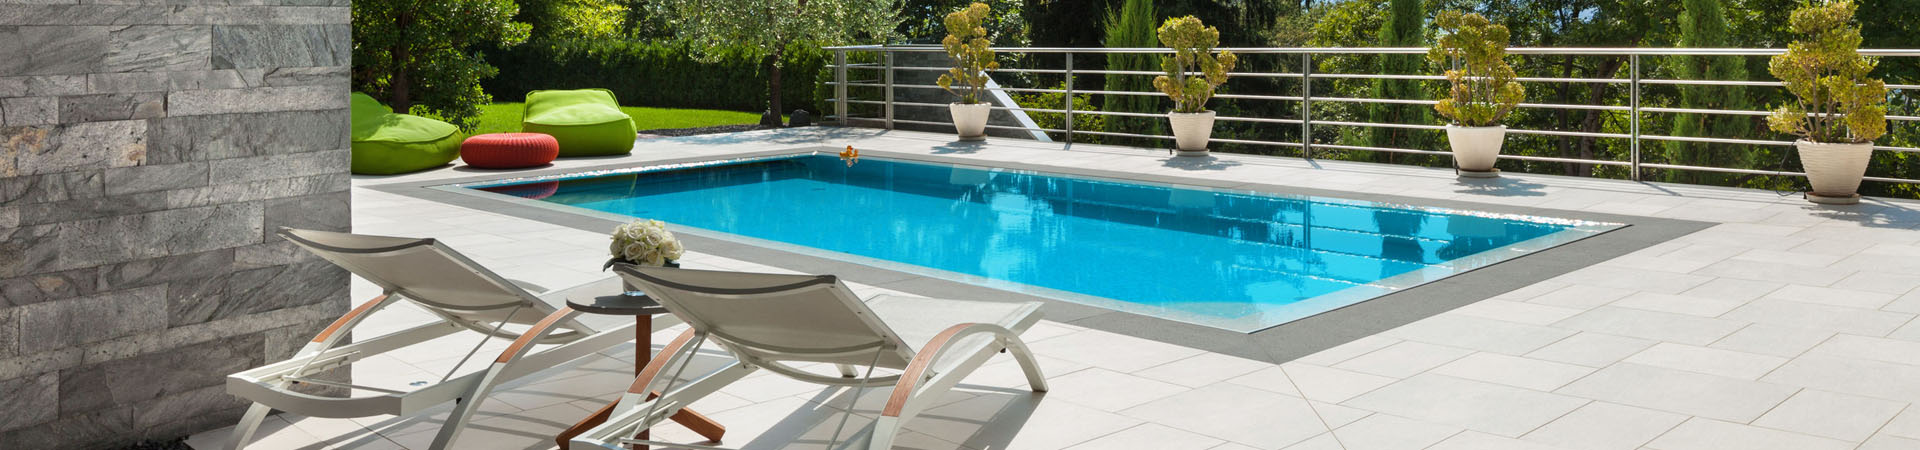 Residential Pool with Pool Deck | Stahlman Pool Company - Naples, Florida